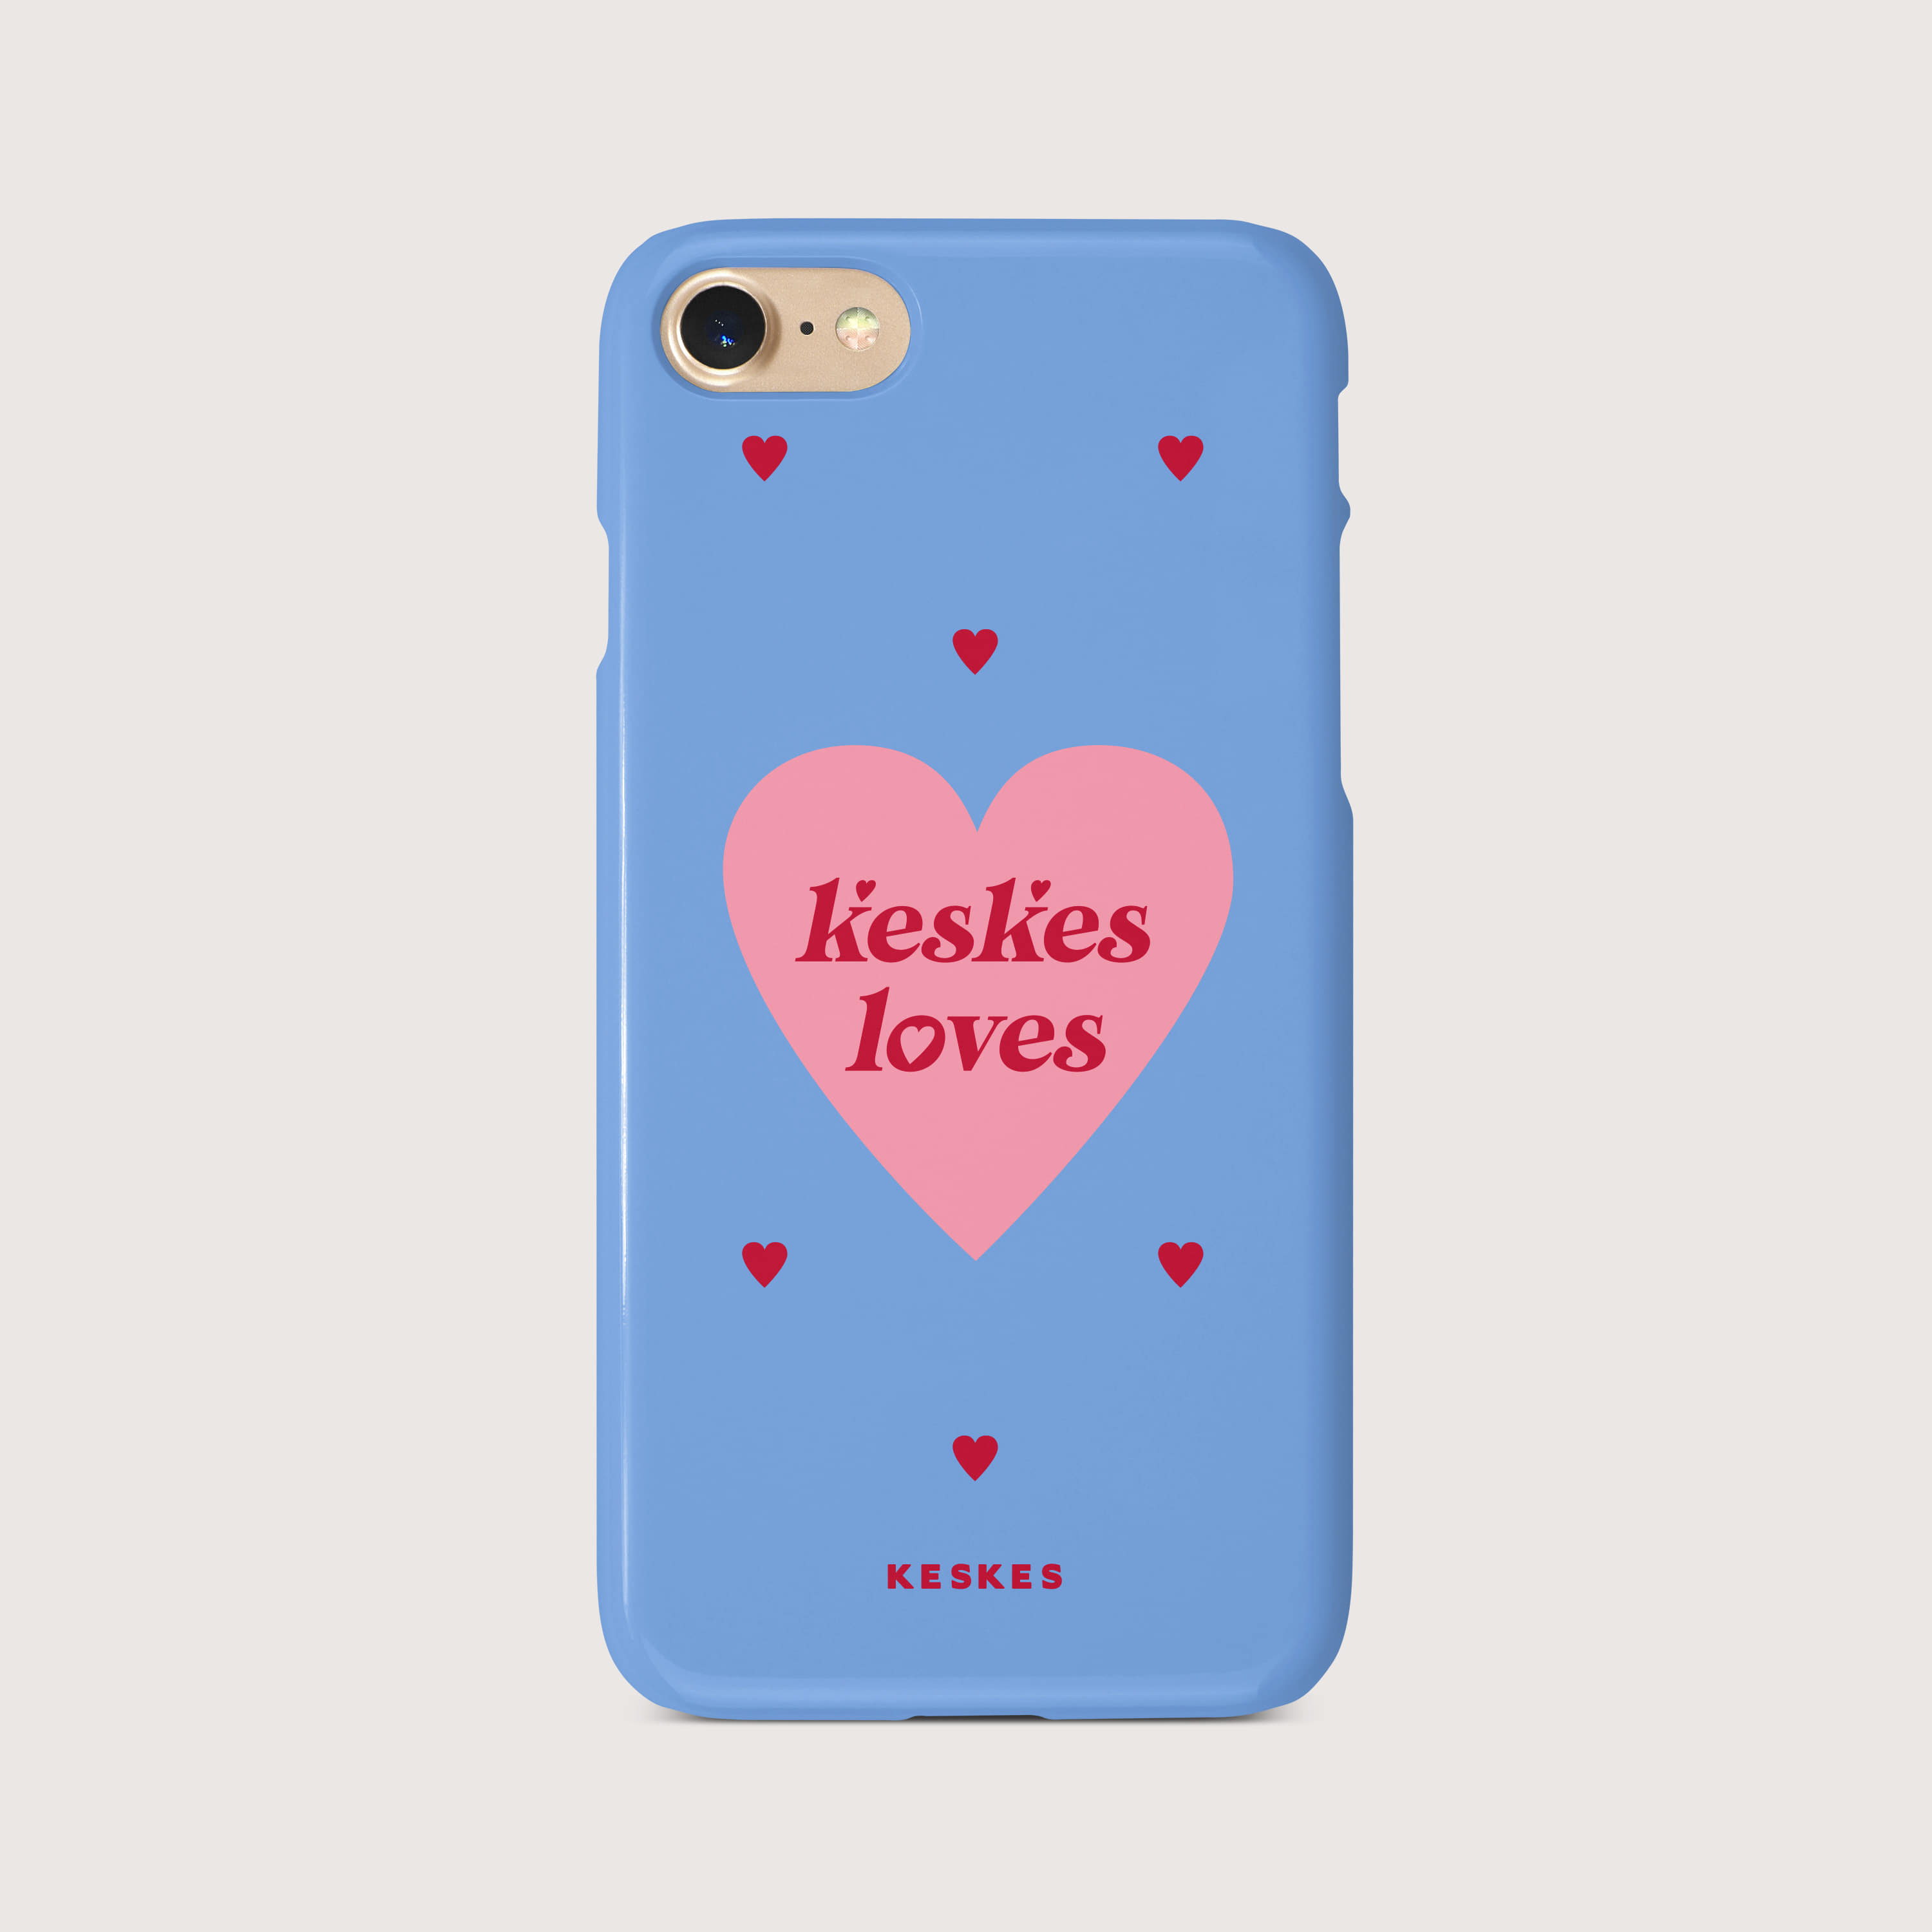 (E-11) keskes loves (lovely)_스카이블루